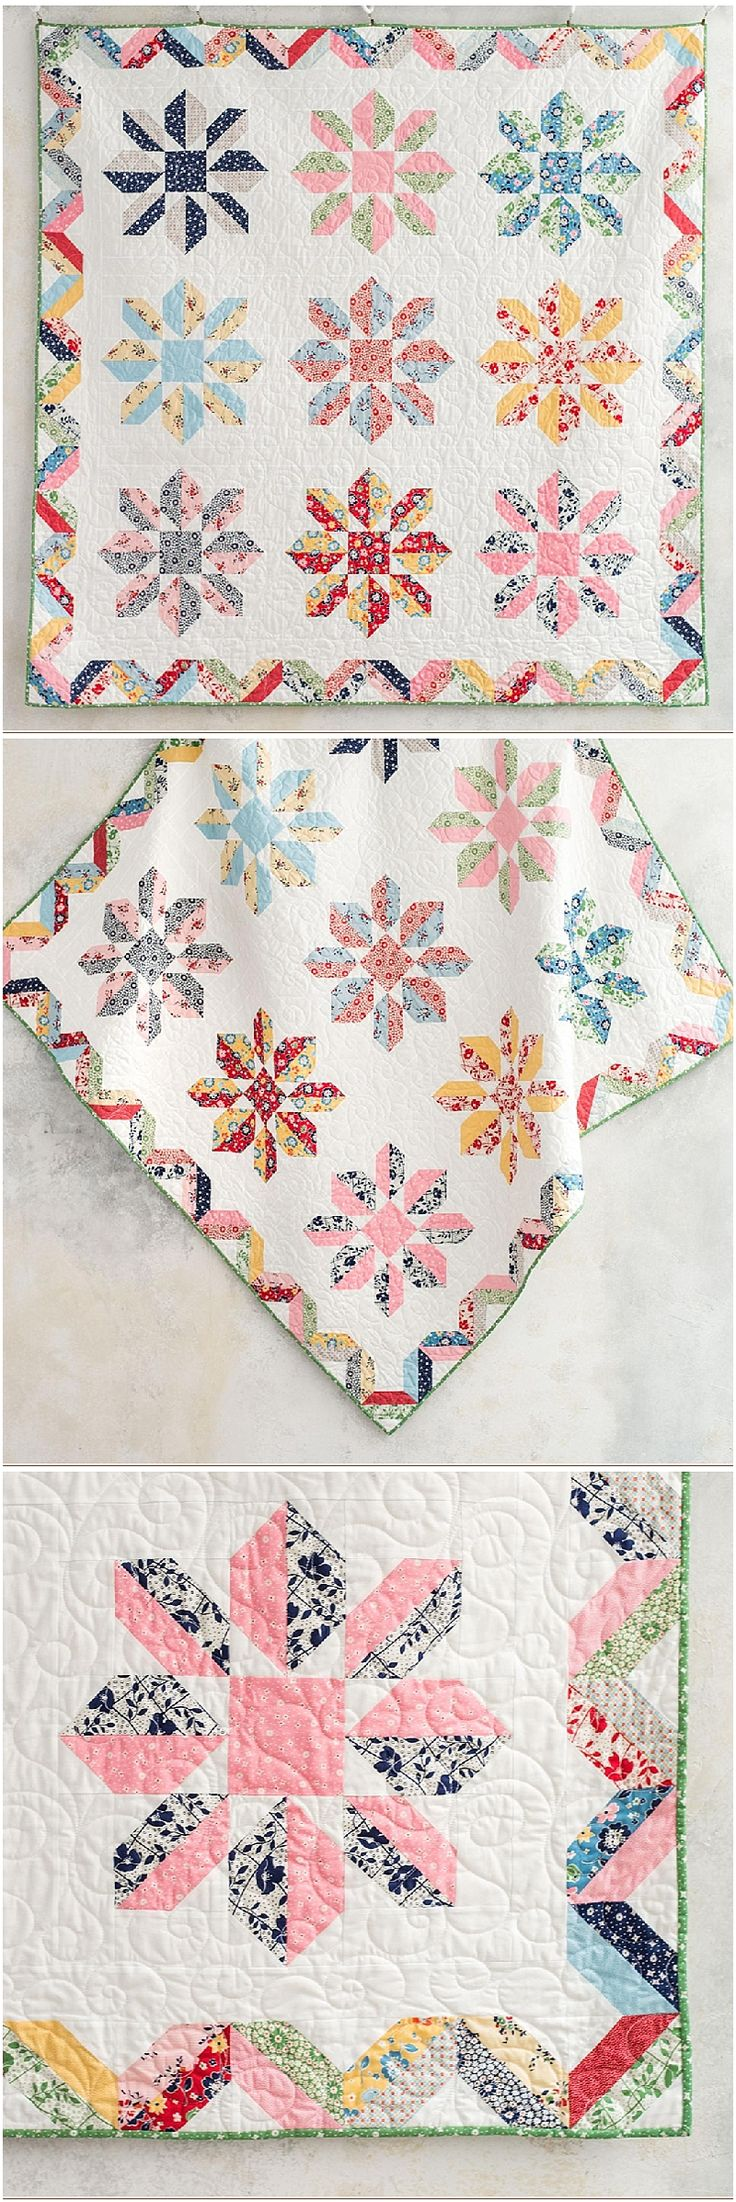 Radiance 1930's Revival Quilt by Craftsy.  Dresden plate quilt using   half square triangles.  Fat Quarter friendly quilt using boundless   fabrics.  affiliate link.